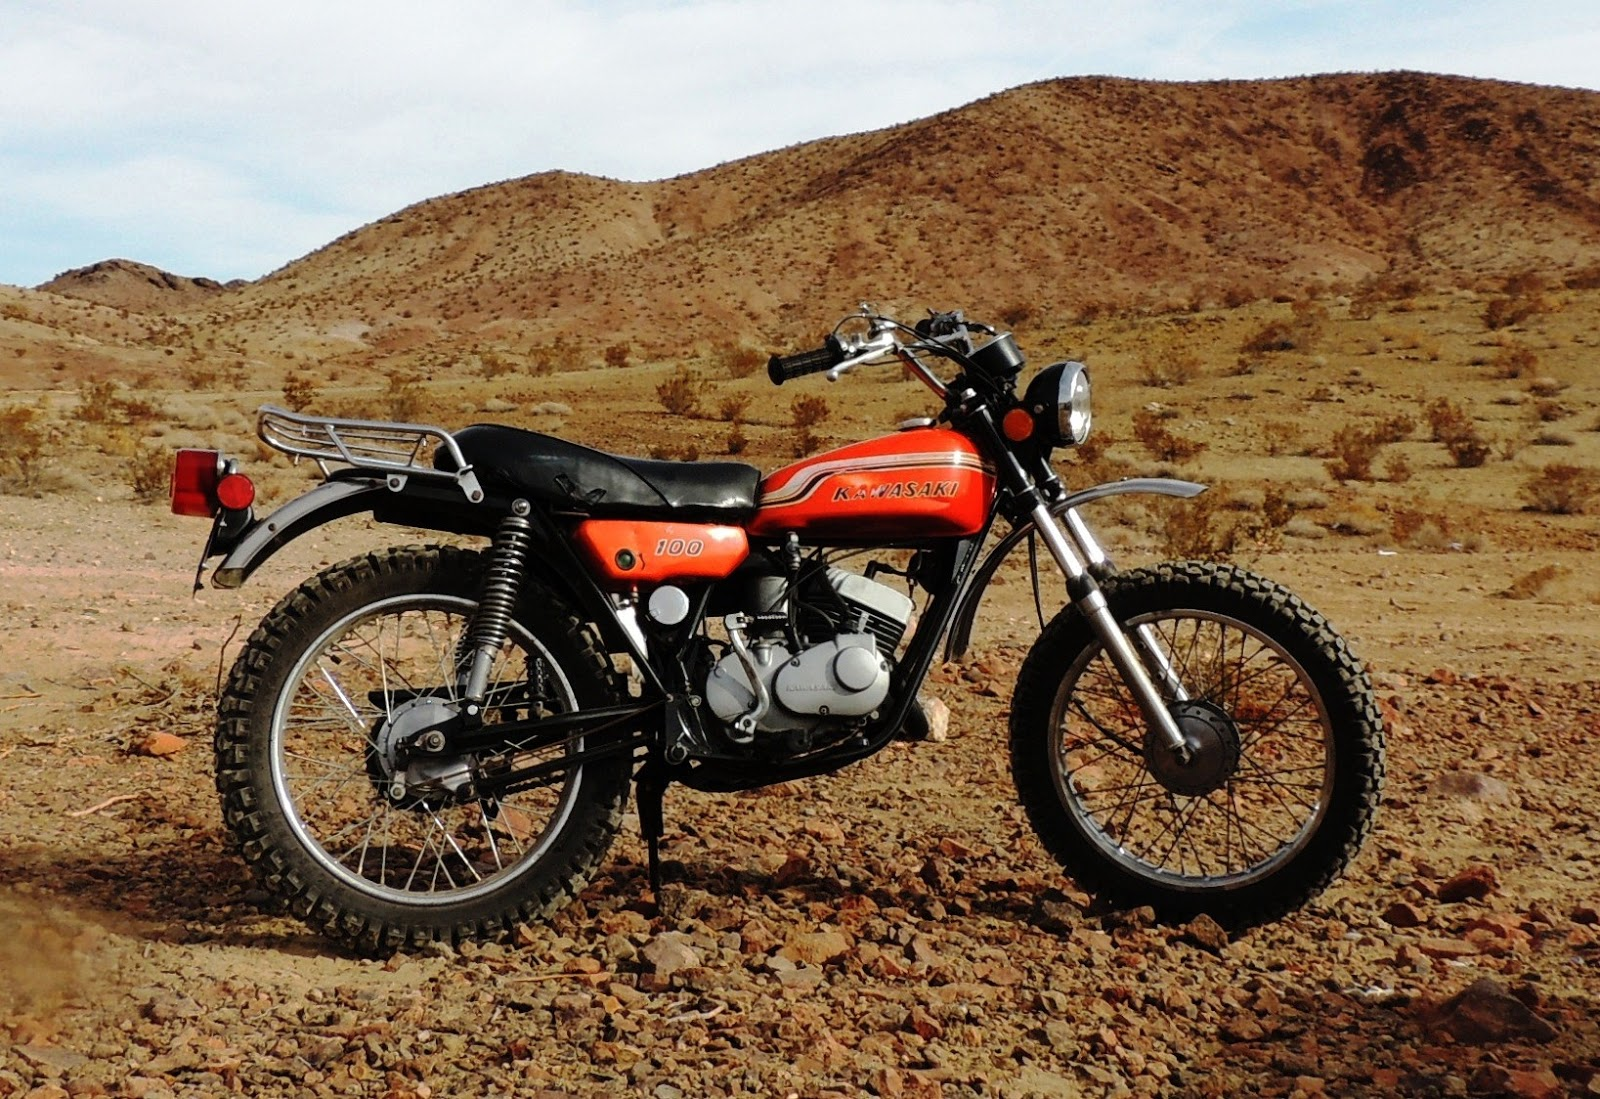 Restoring A 1972 Kawasaki G4 Tr B Motorcycle Desert Riding G4tr Wiring Diagram I Took It Easy For The Most Part Last Thing Wanted To Do Was Fall Over And Hurt Myself Or Mess Up Bike Have Been Working On Months